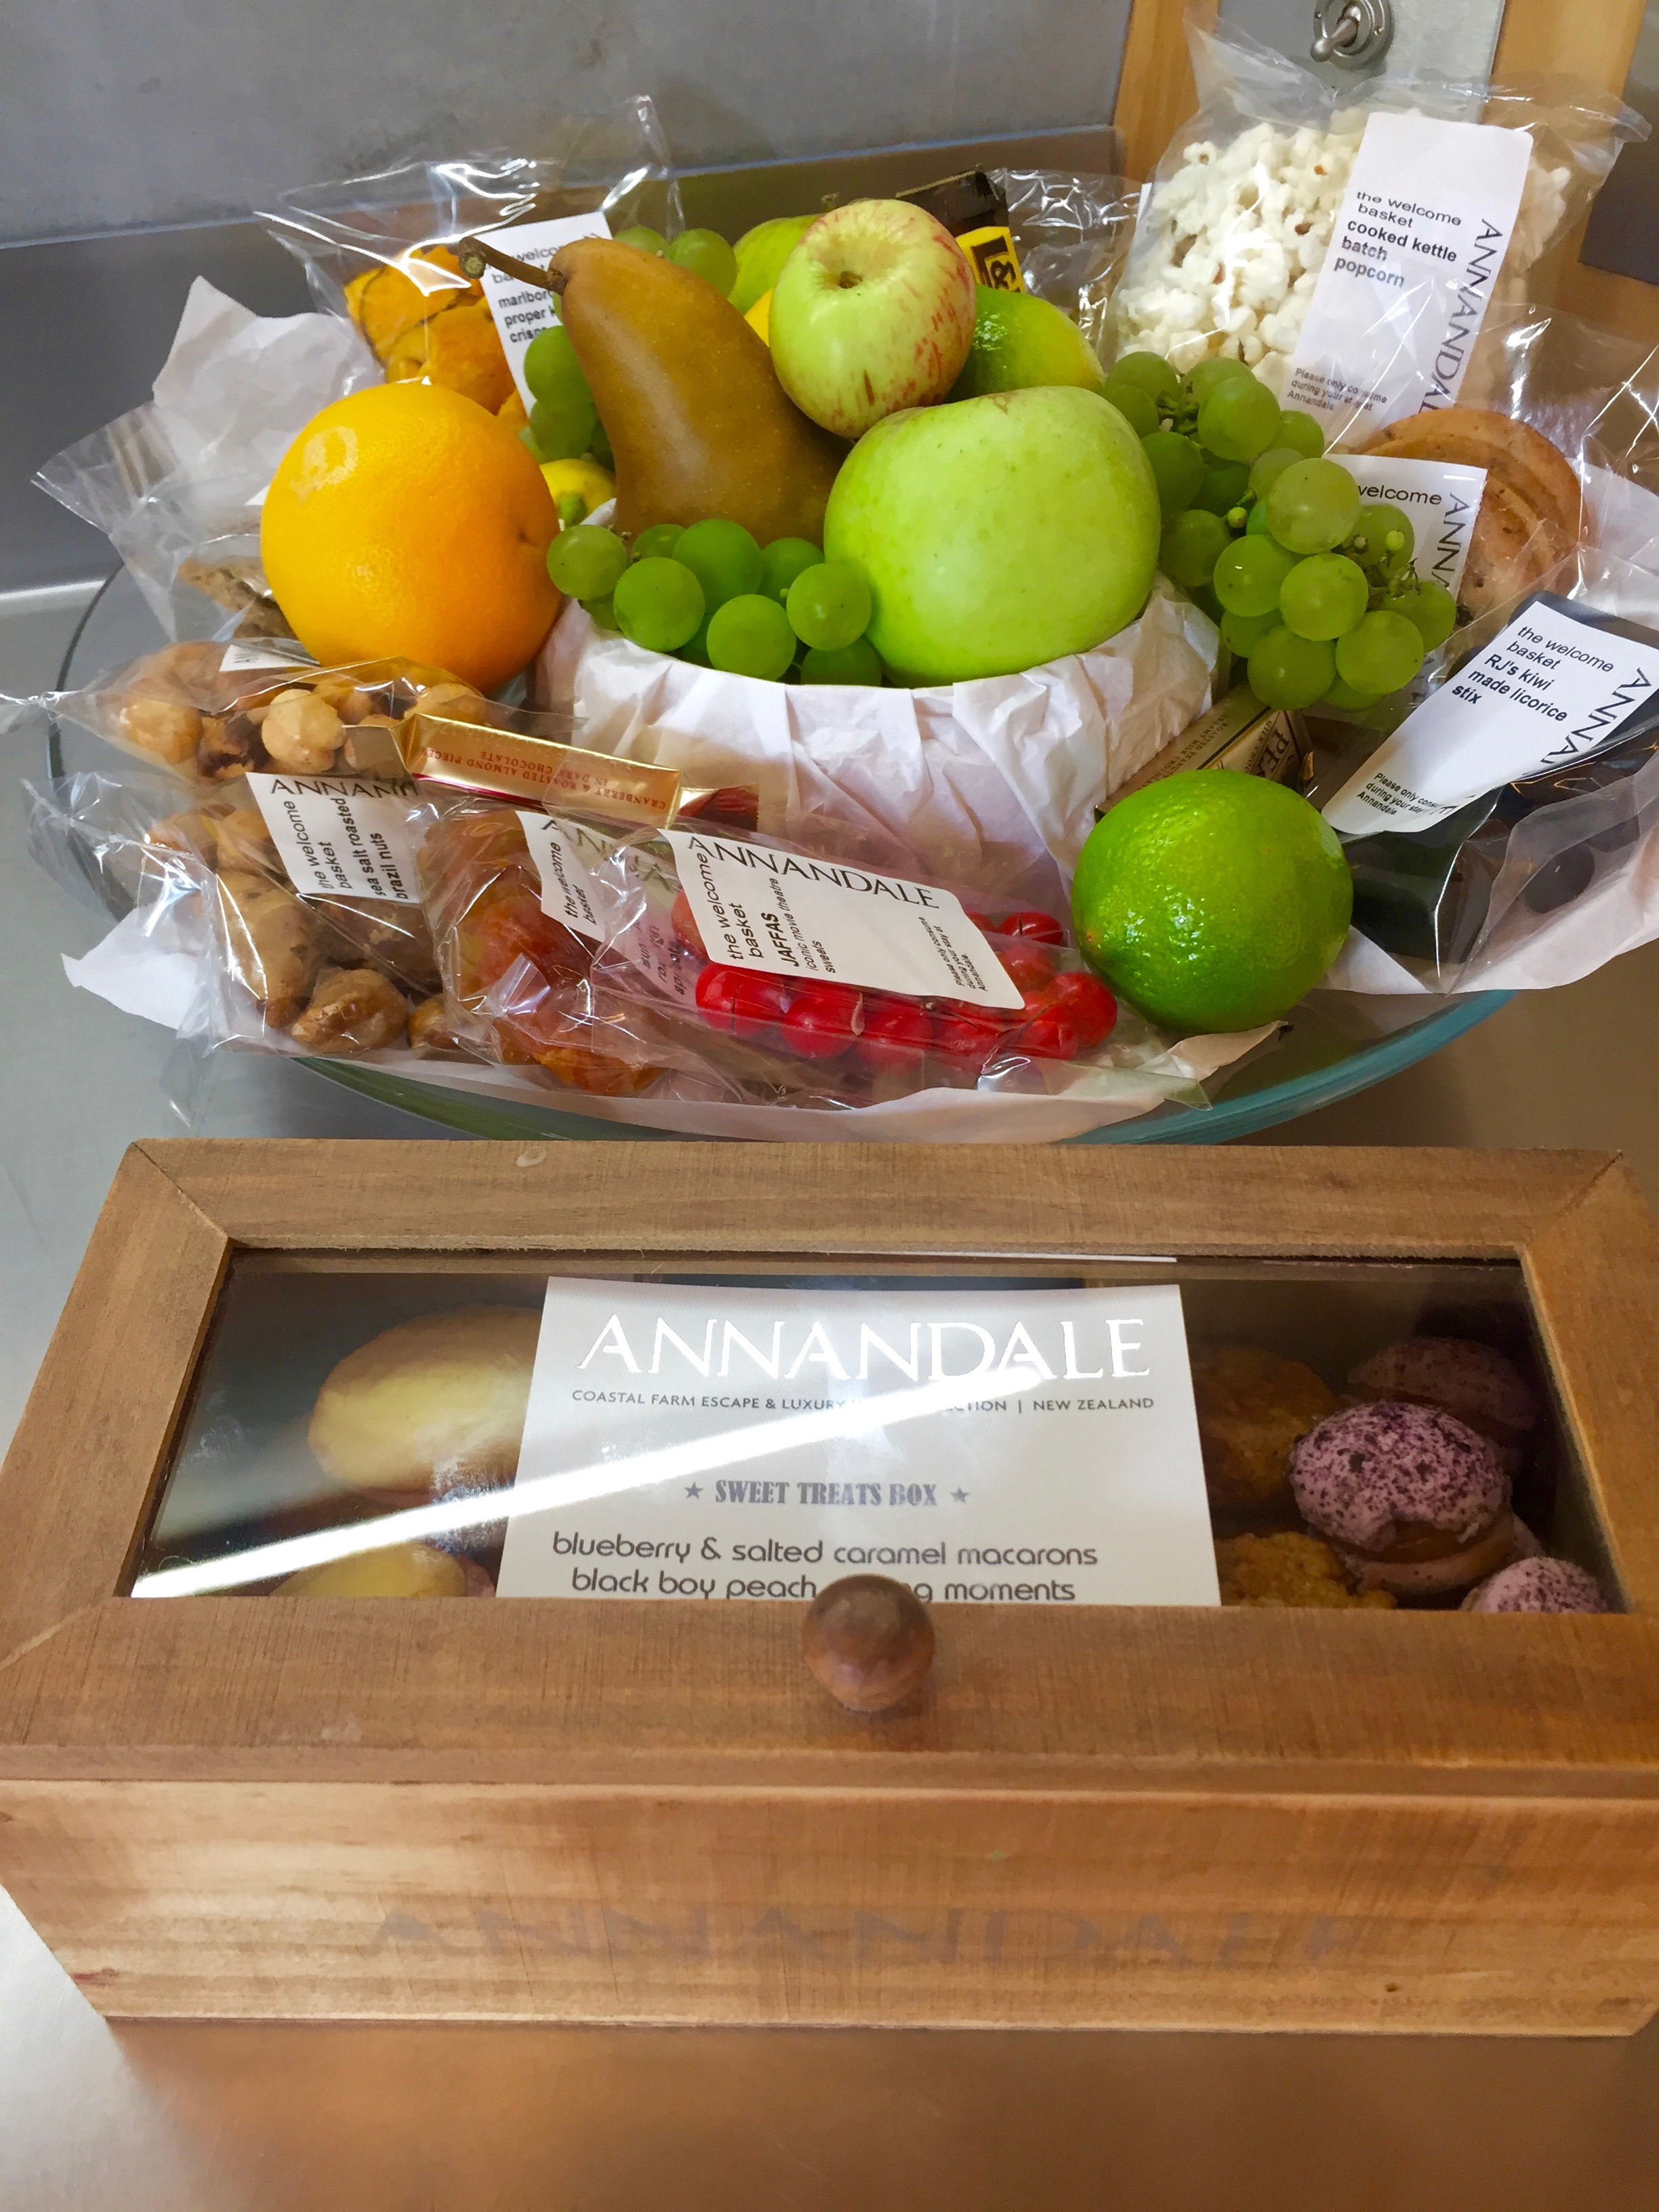 annandale welcome basket on the south island of new zealand